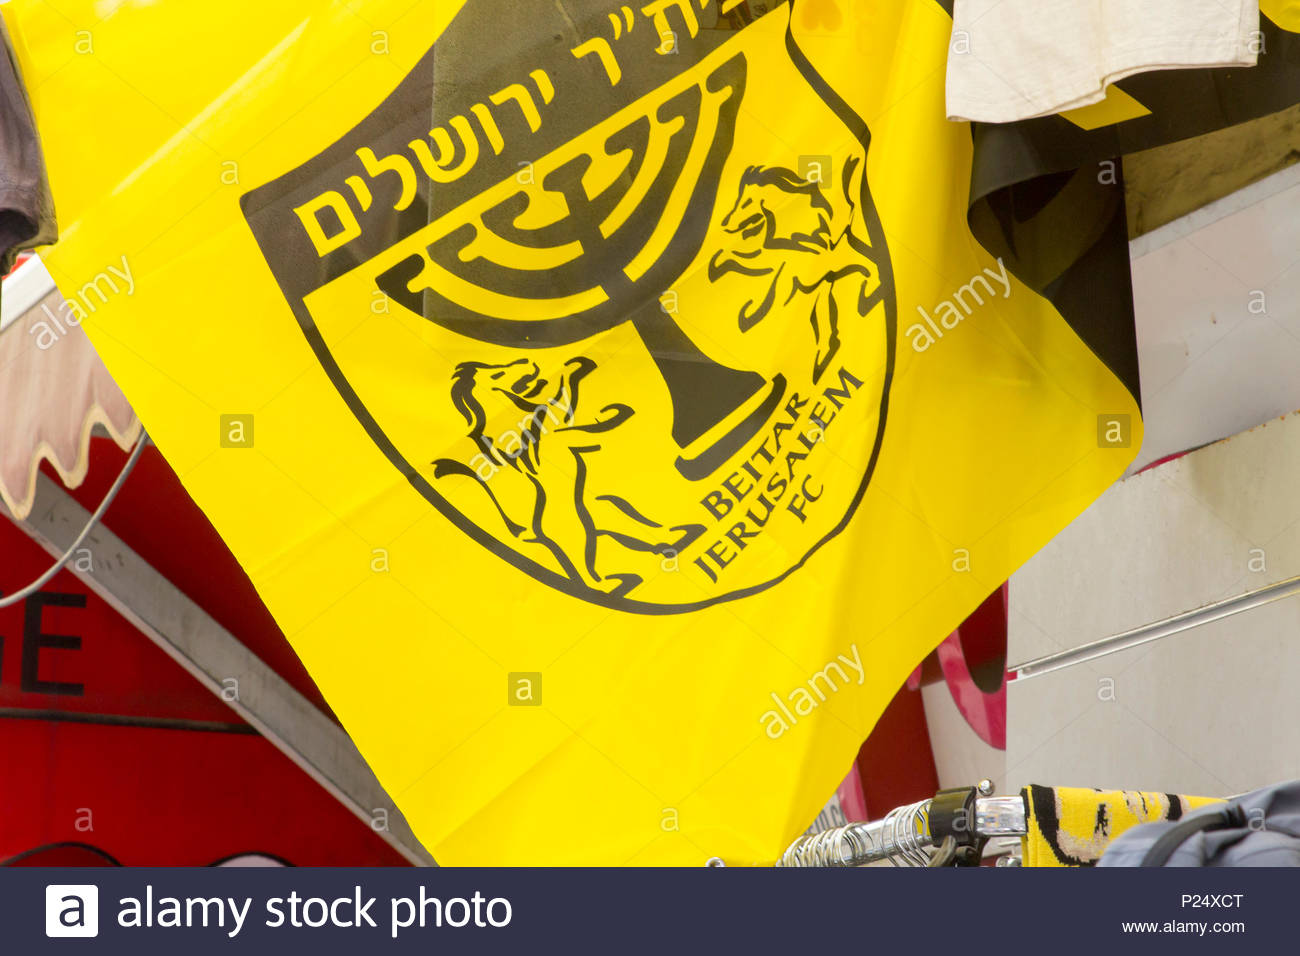 9 May 2018 A supporter's pennant for the Jerusalem Beitar premier League team on sale at the Mahane Yehuda street market in Jerusalem israel - Stock Image